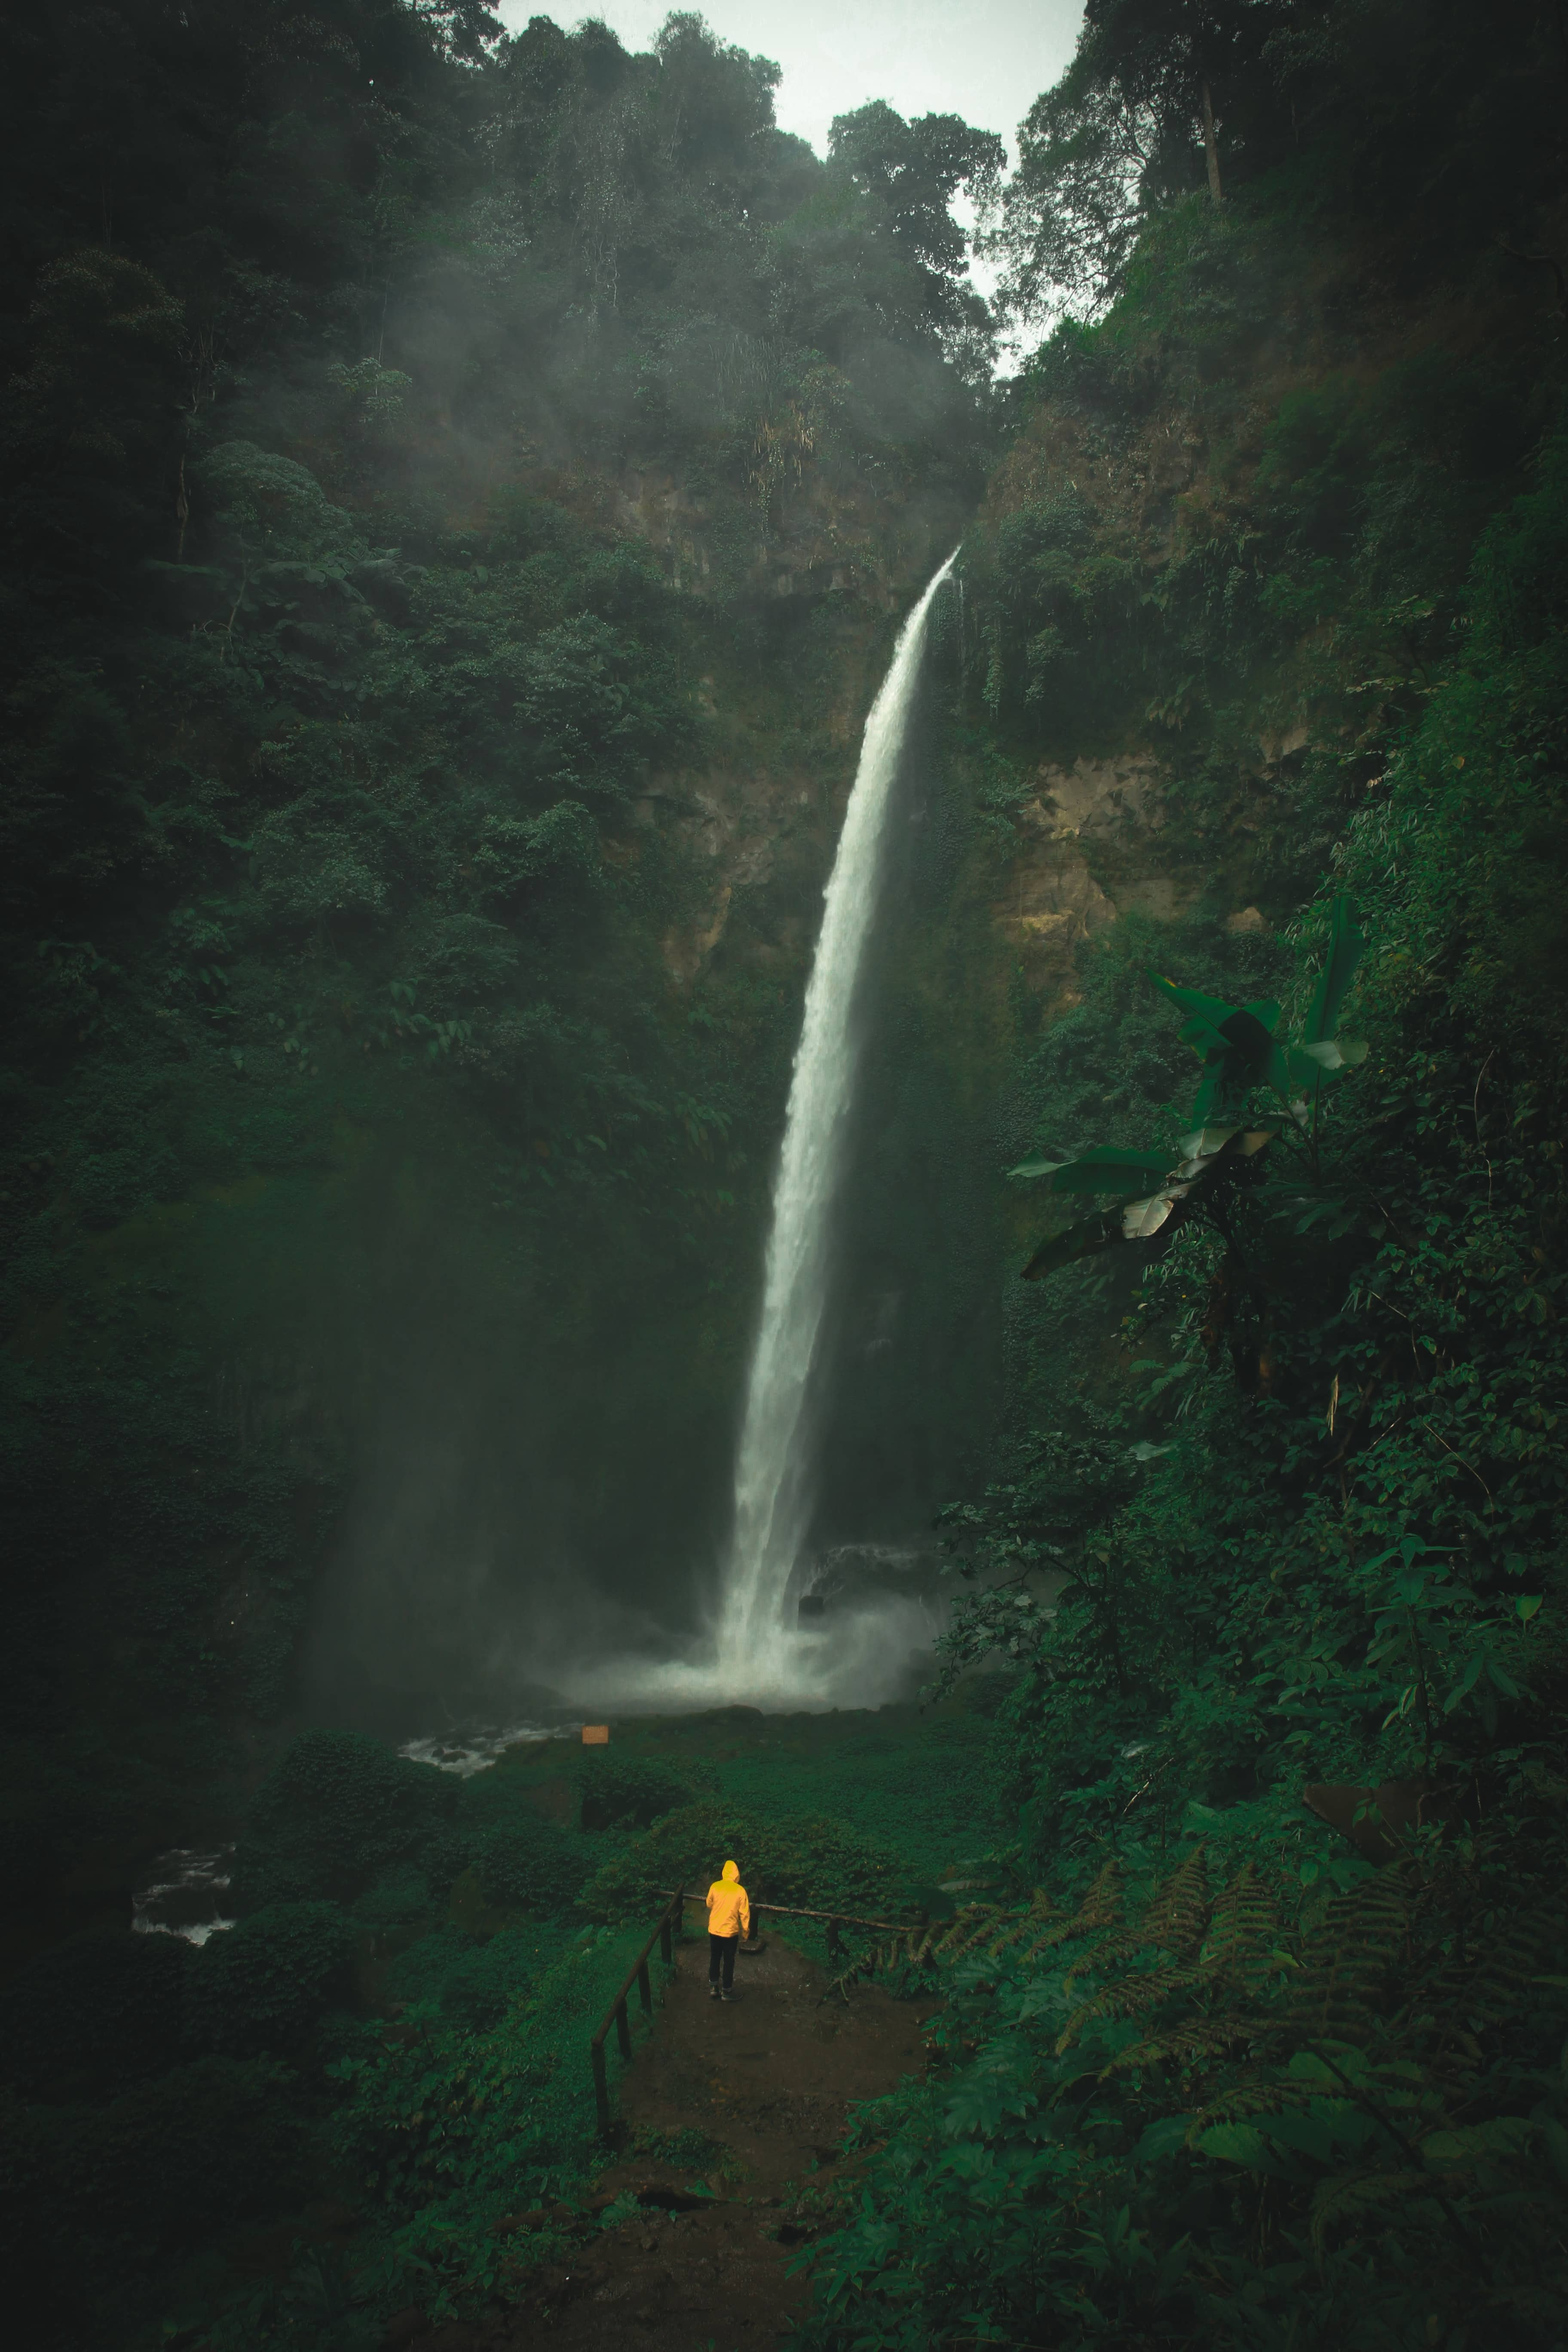 person walking under a water fall in a rainstorm